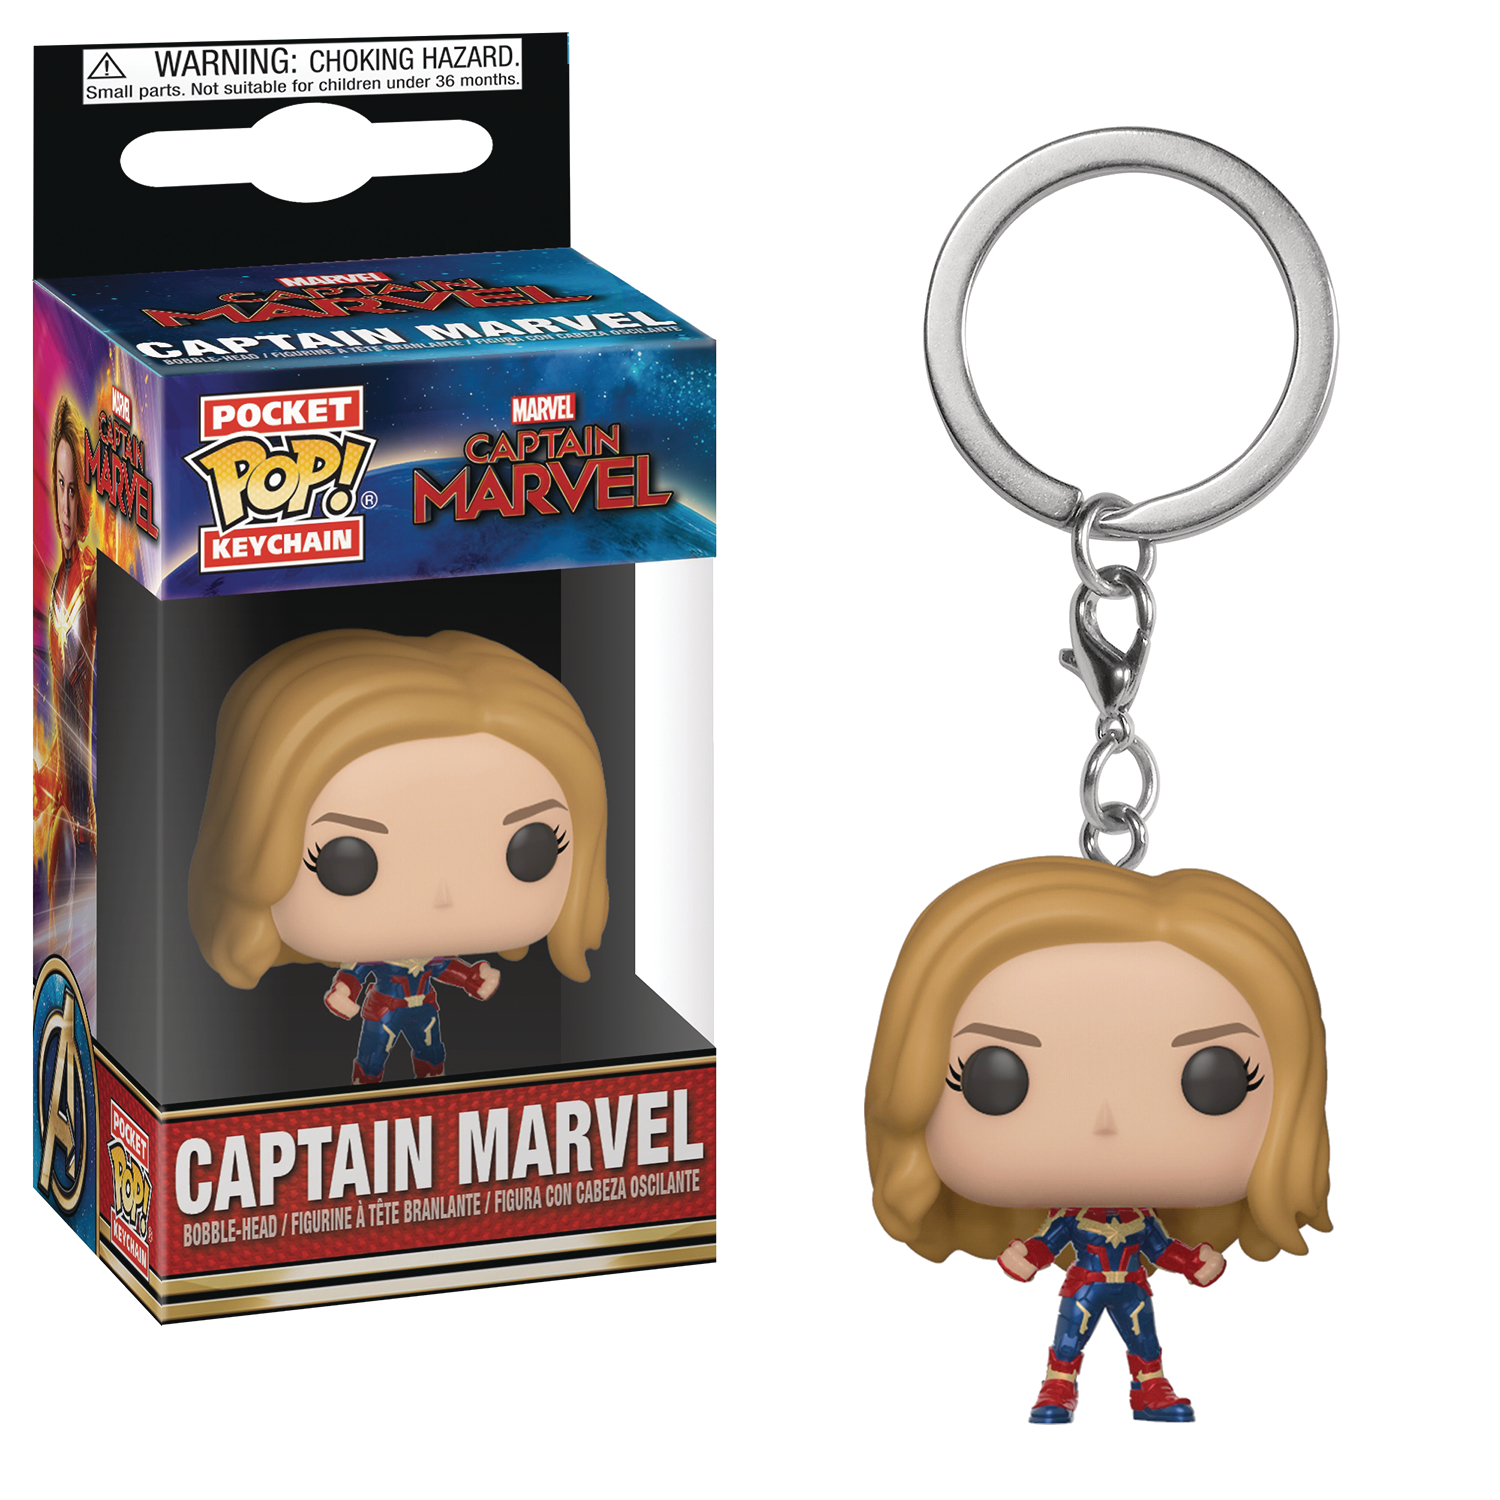 POCKET POP MARVEL CAPTAIN MARVEL CAPT MARVEL FIG KEYCHAIN (C